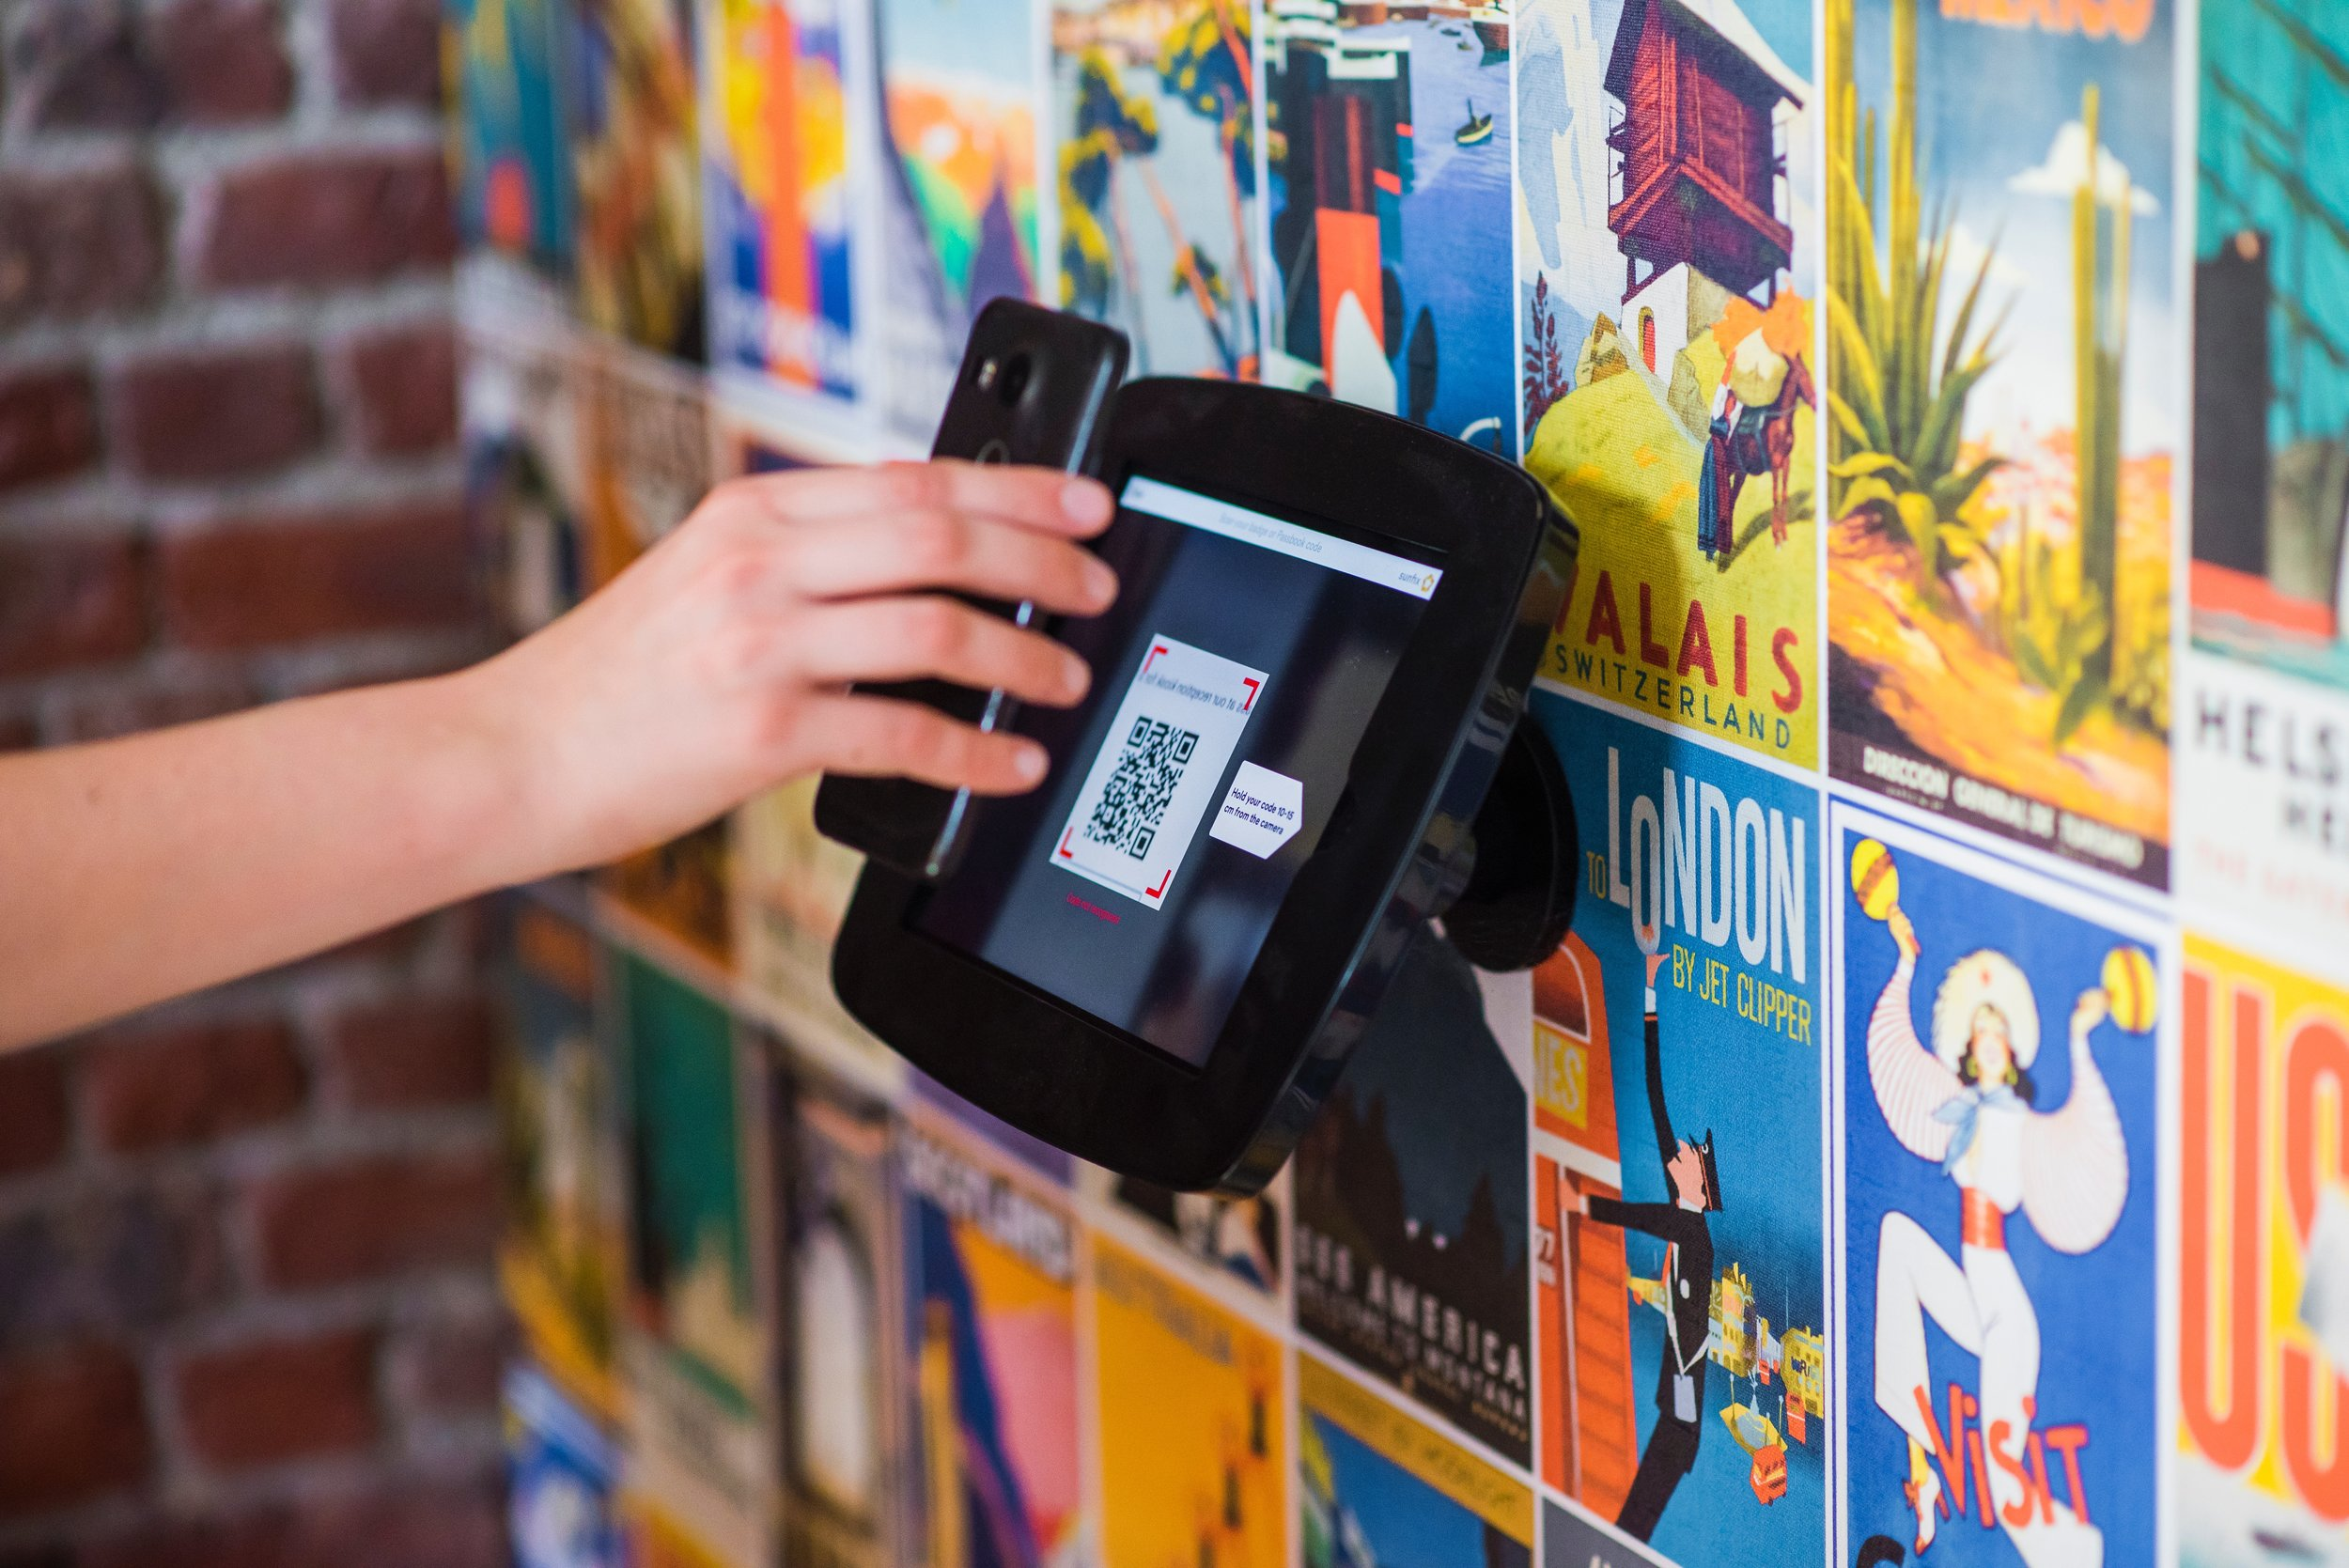 digital-devices-in-retail